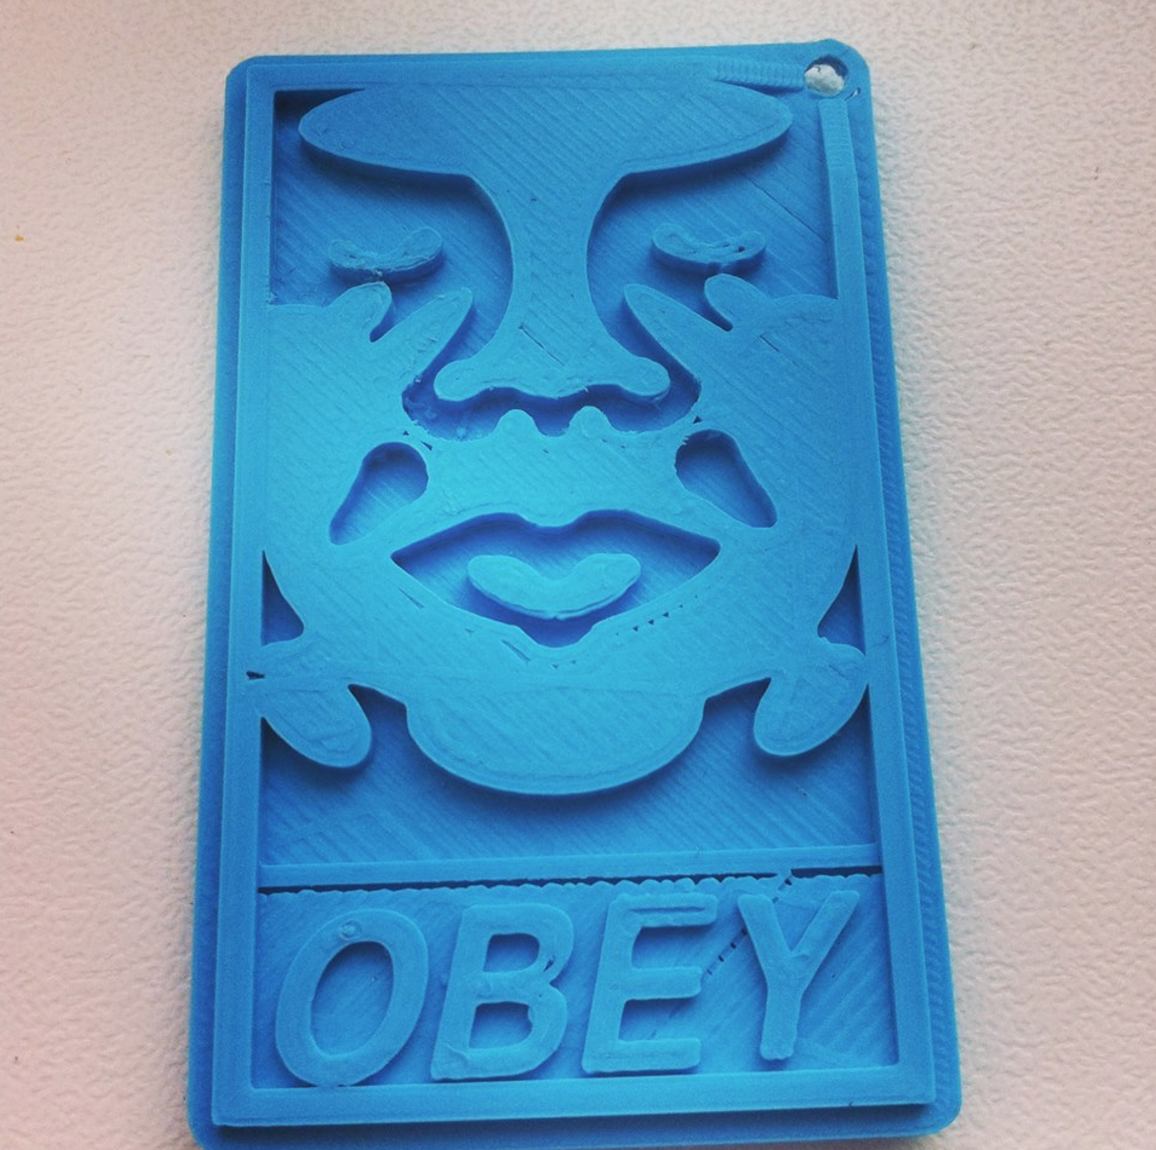 Capture d'écran 2016-12-08 à 11.22.53.png Download free STL file Obey Andre the giant keychain • 3D printable template, Mathi_